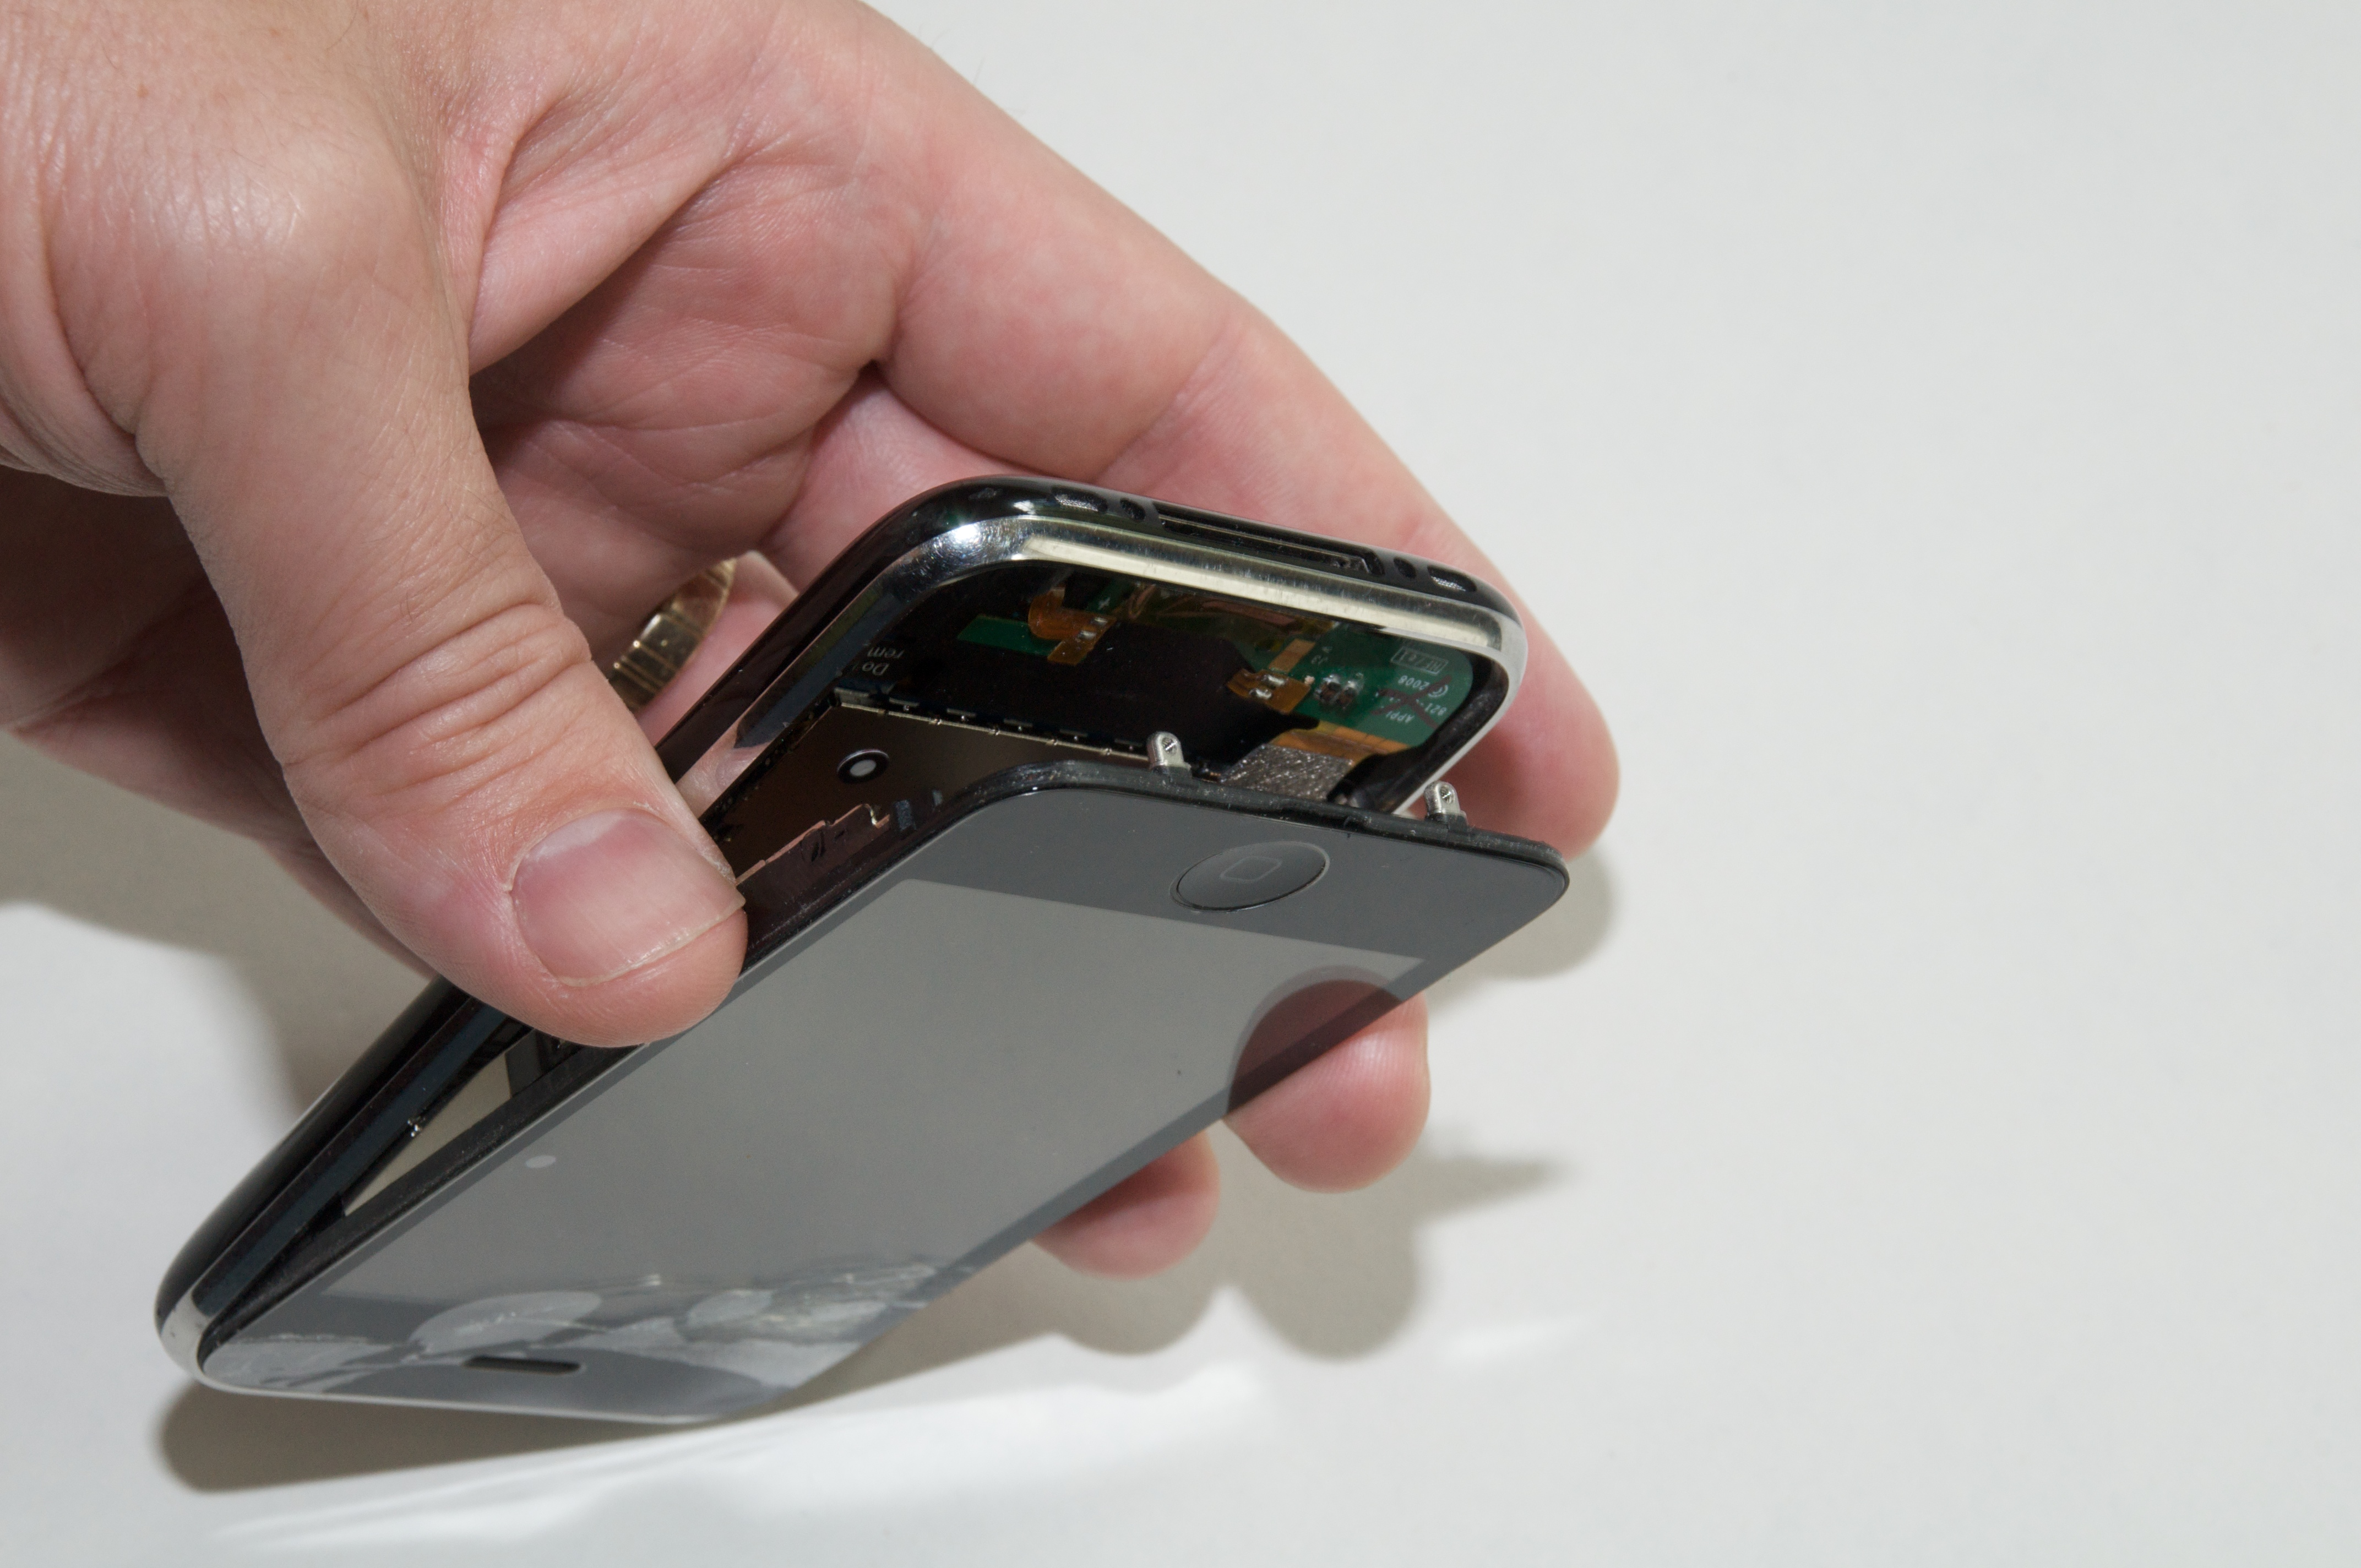 how to replace a cracked iphone 3g screen tidbits. Black Bedroom Furniture Sets. Home Design Ideas